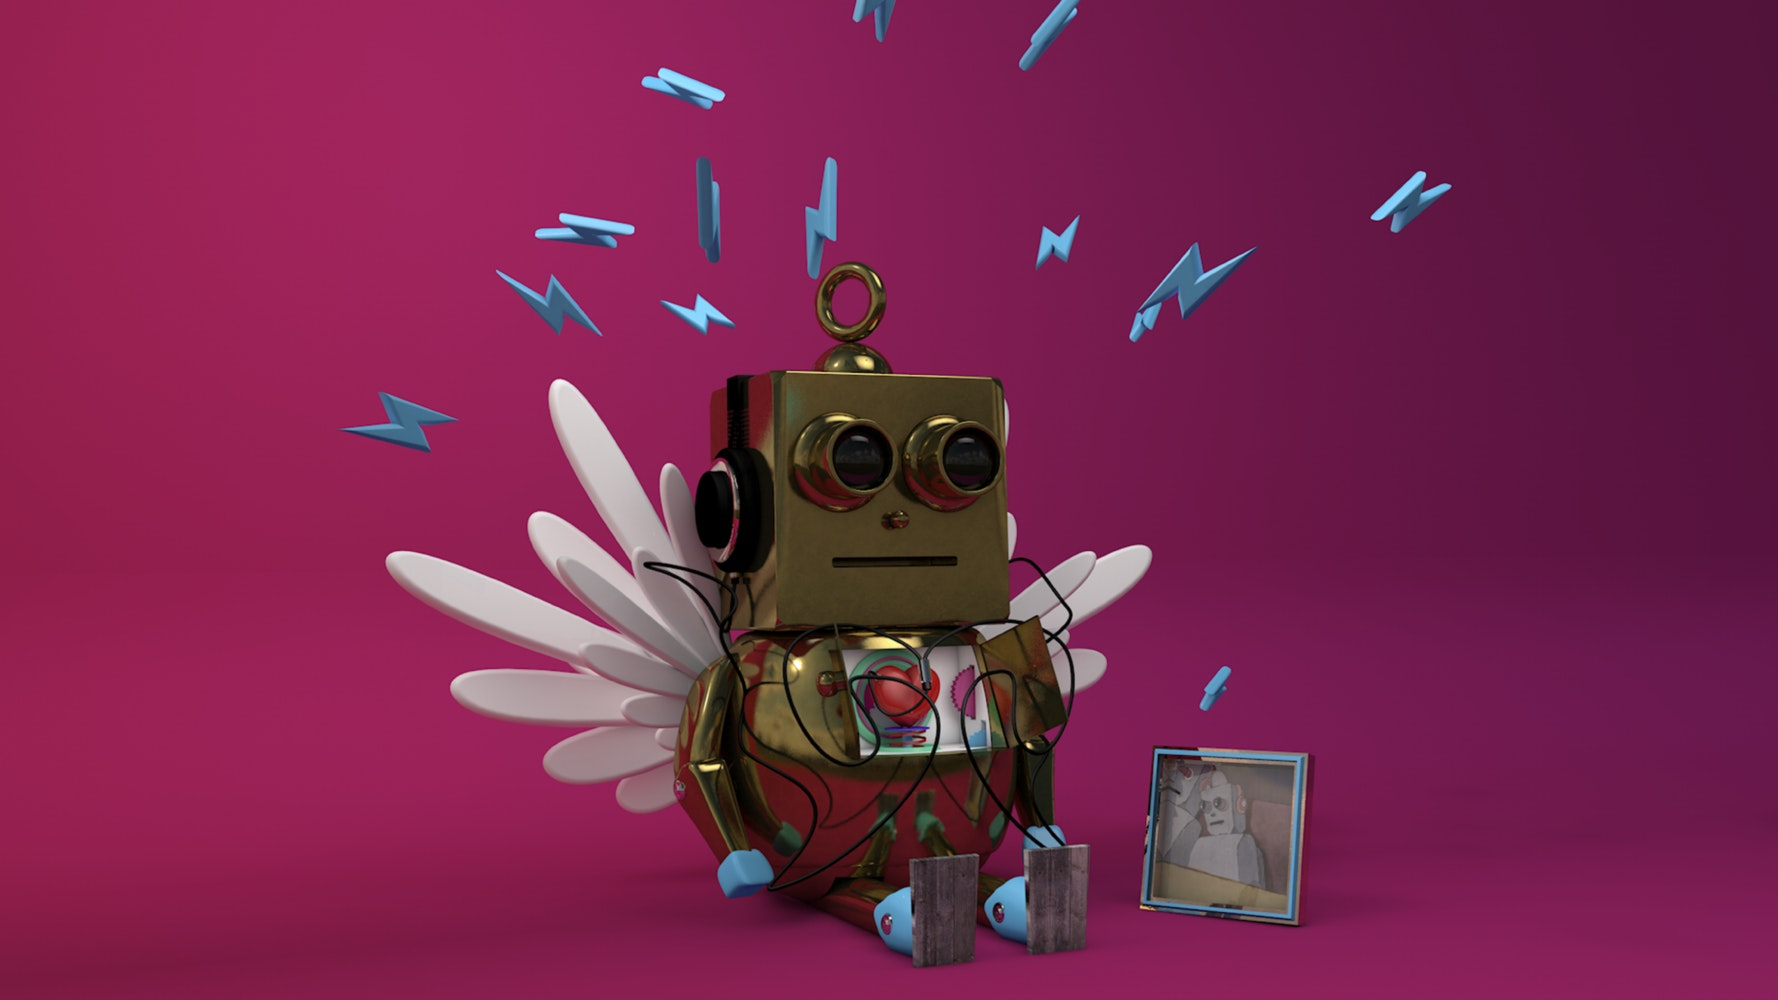 Small robot with wings